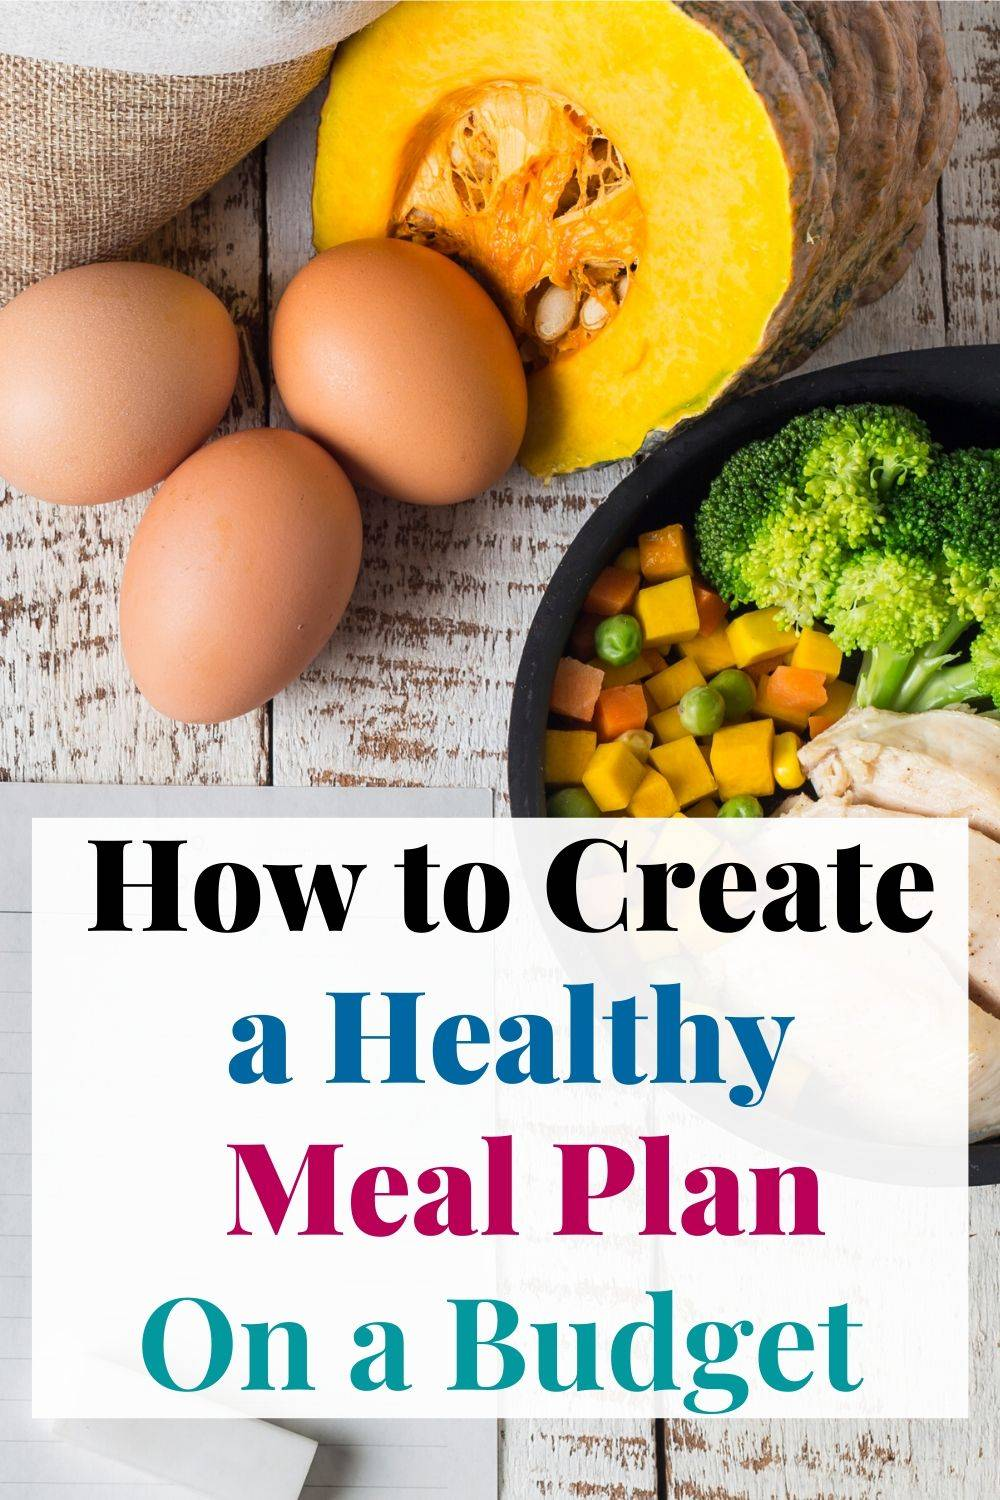 Learn how to meal plan healthy meals an a budget. Serve your family healthy meals without breaking the bank.